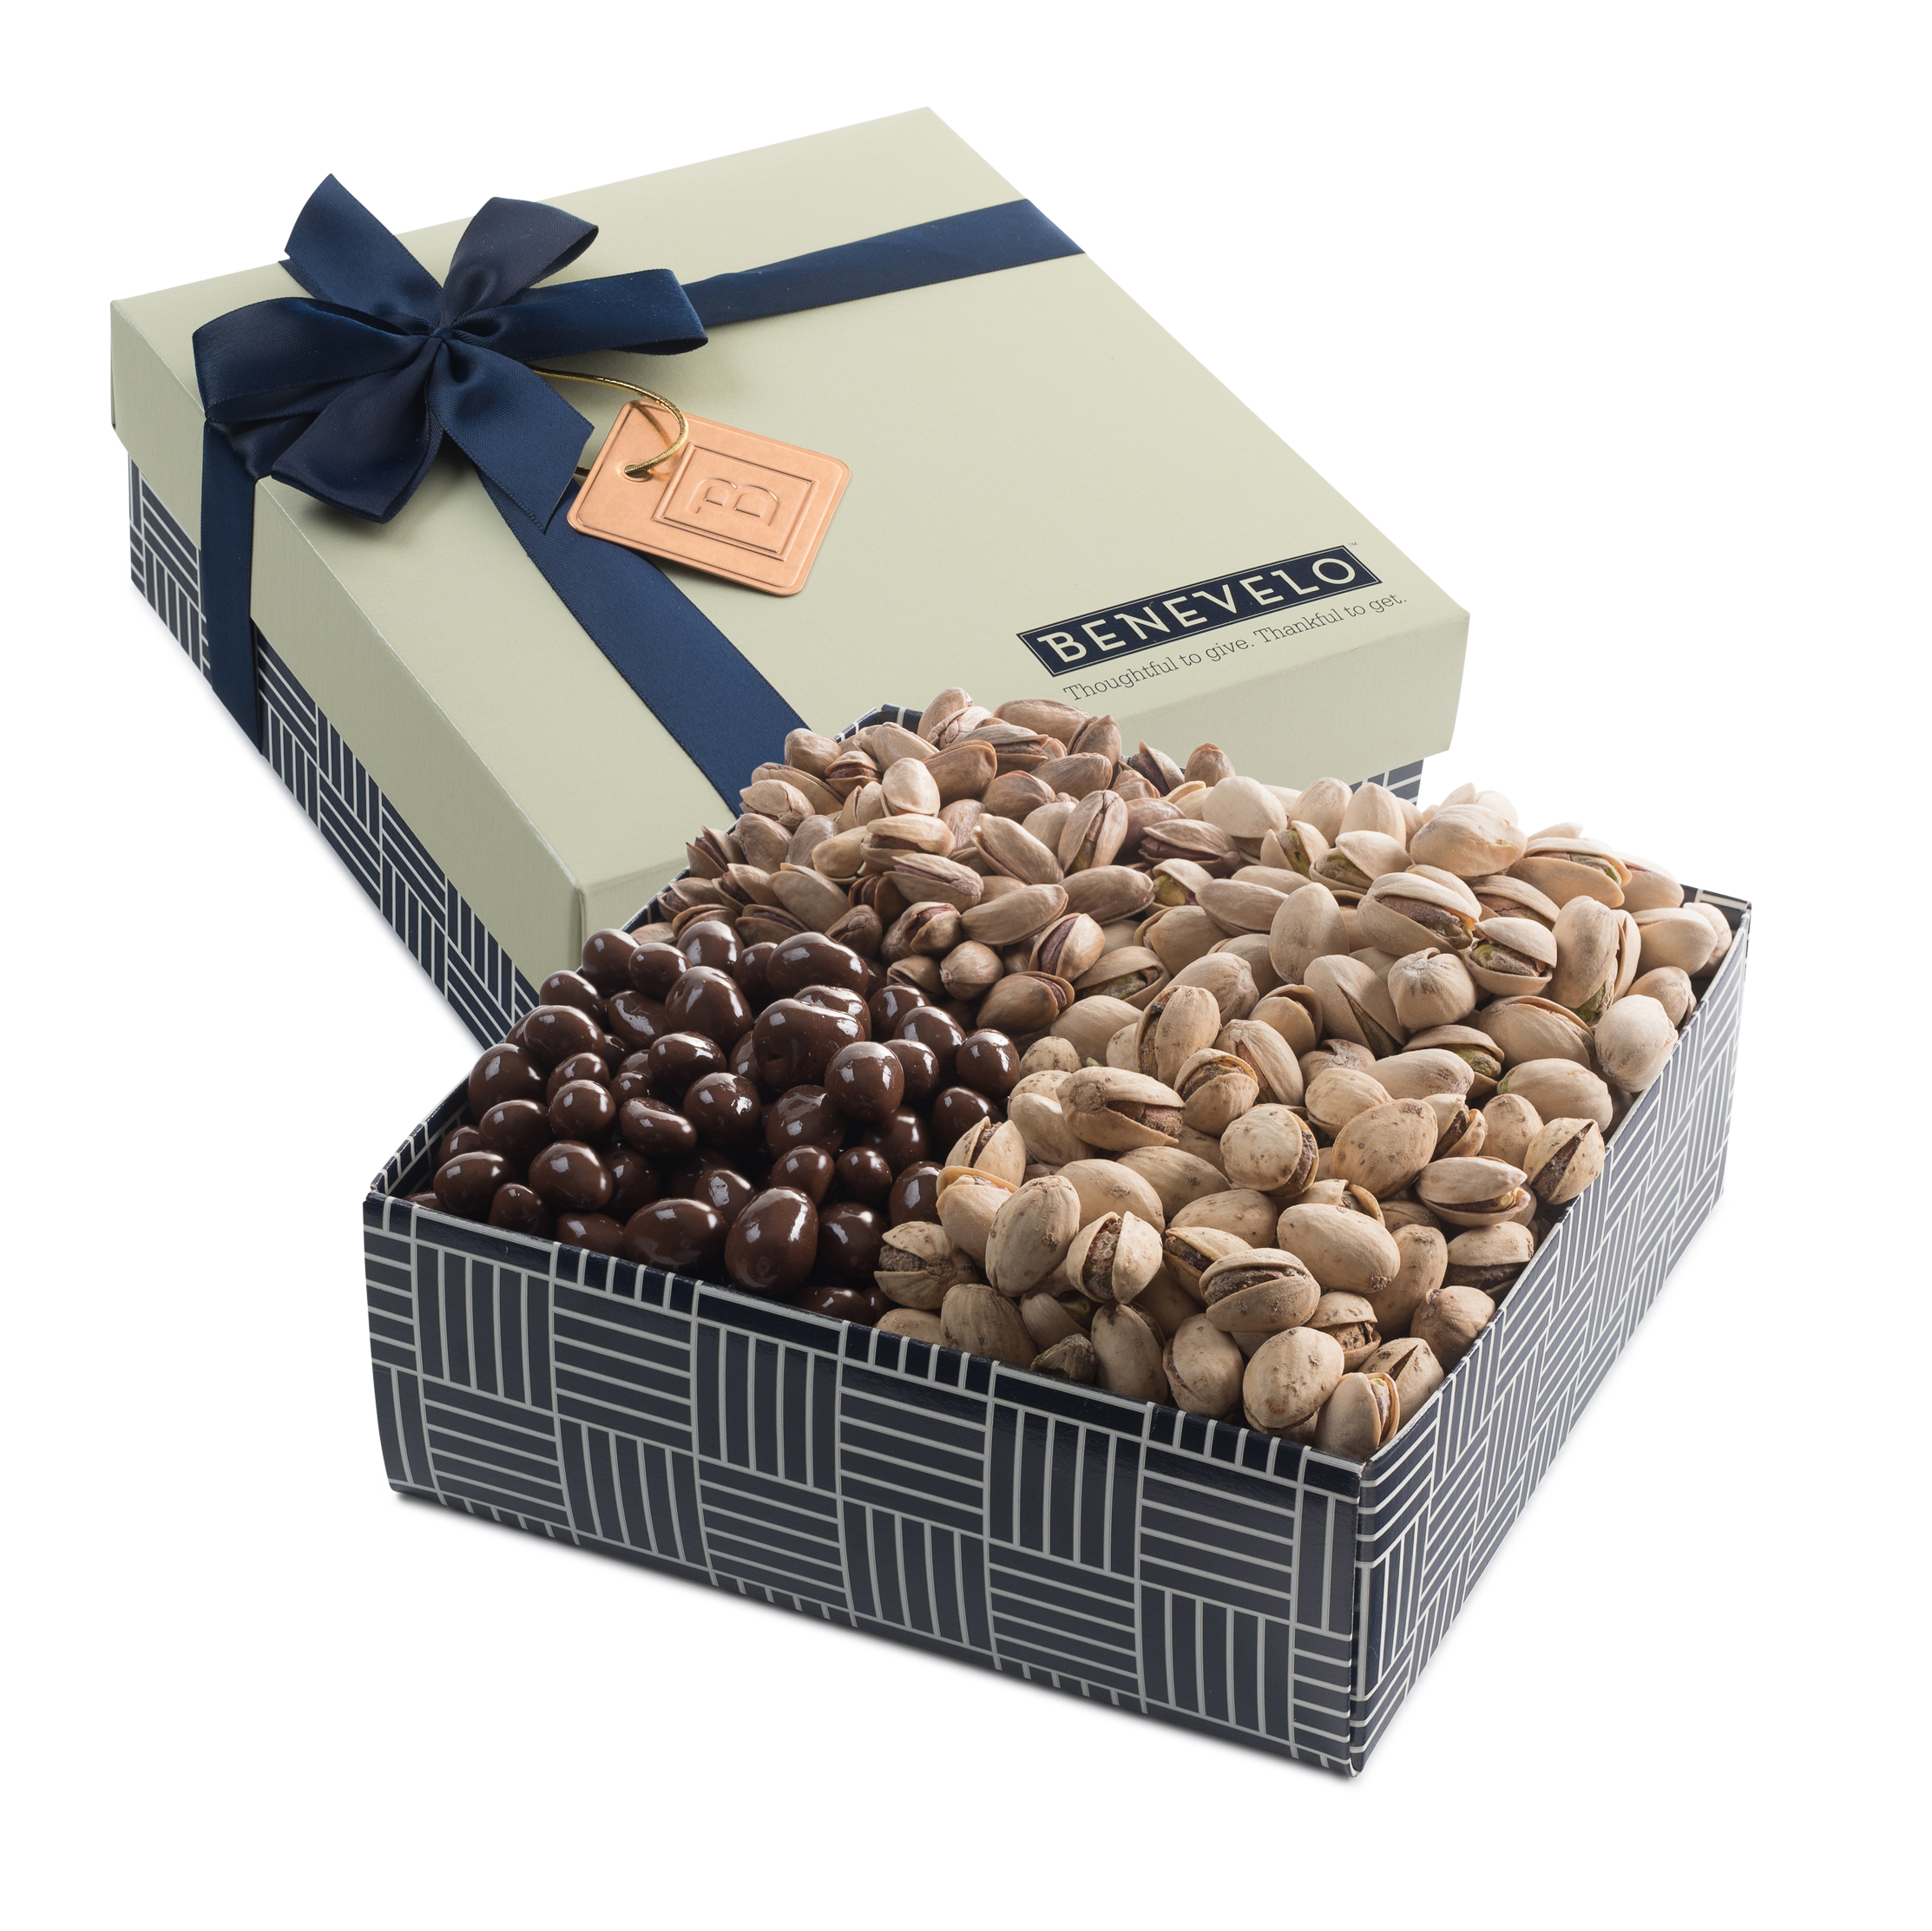 4 Section Gourmet Pistachio Assortment Gift Box, 1.5 Pound Benevelo Gift Box by